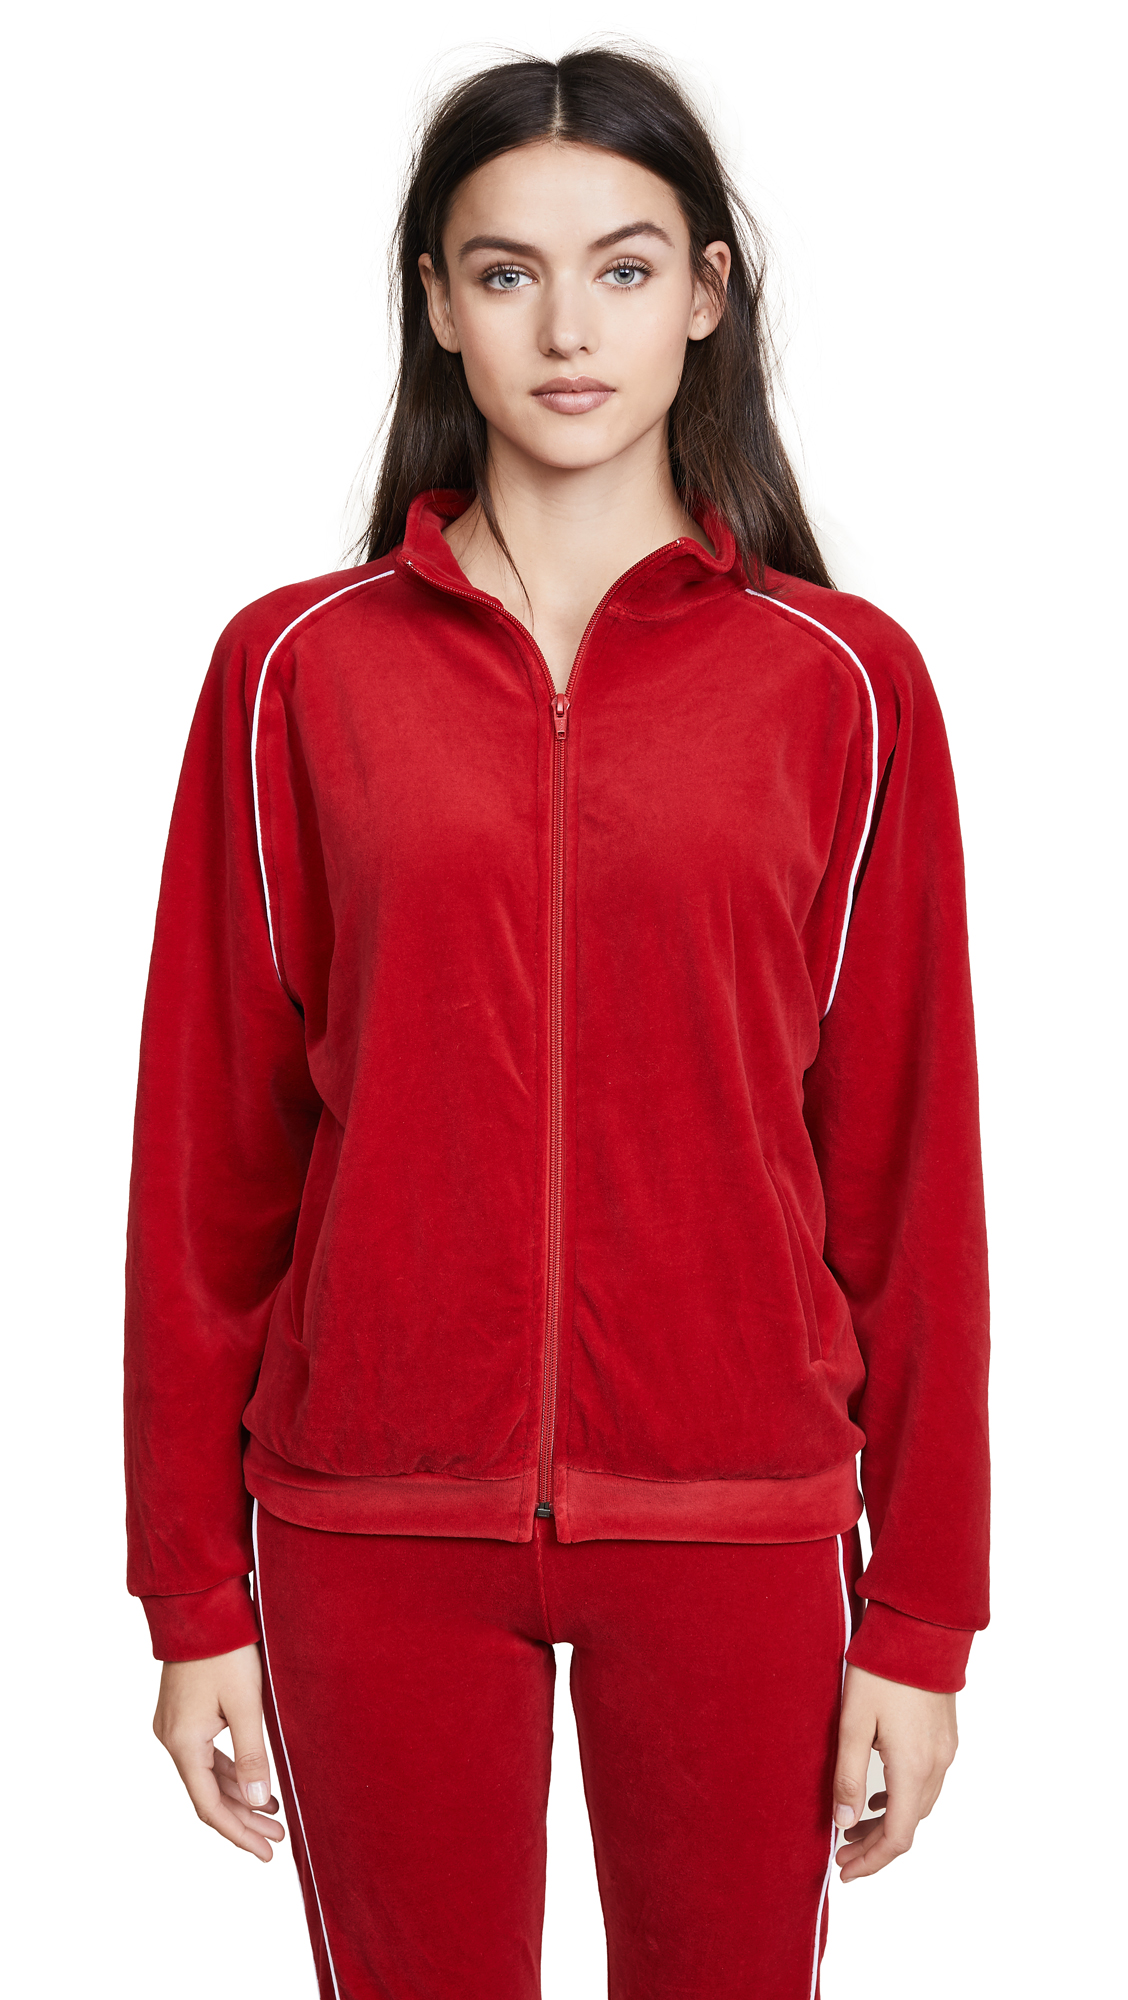 Liana Clothing The Plush Zip Up Tee In Red/White